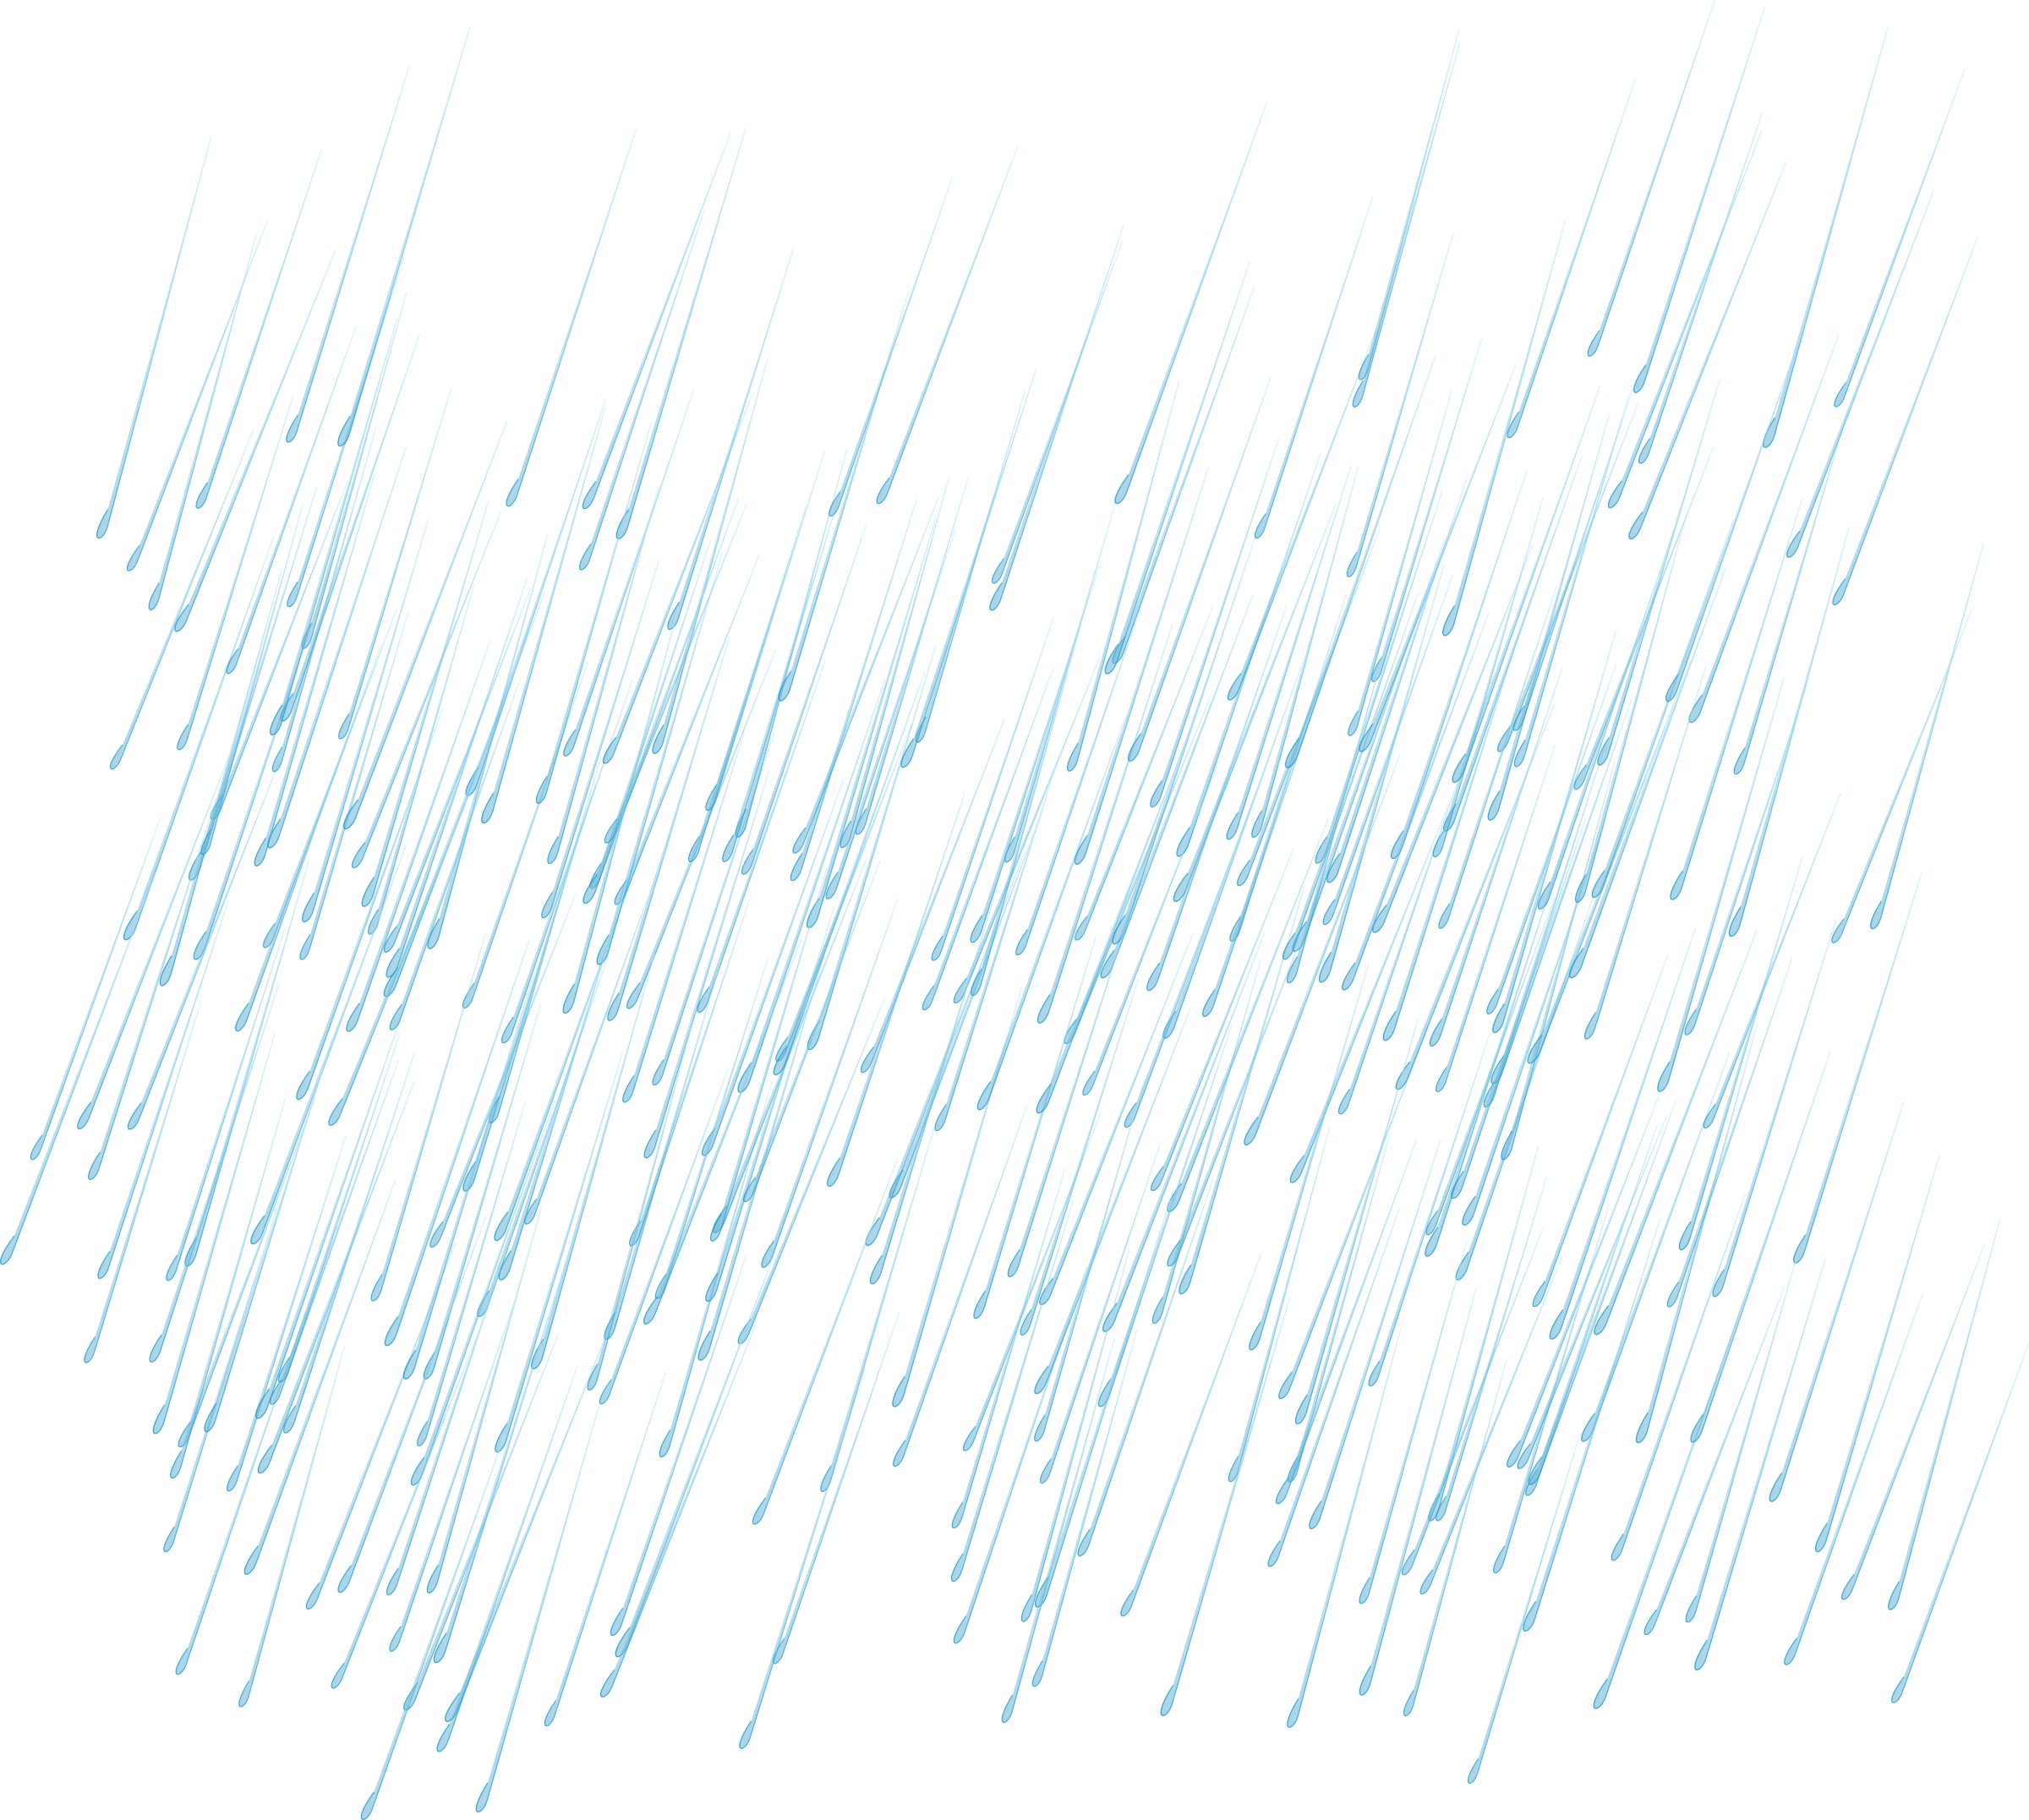 Clouds and rain png. Rainy transparent images pluspng